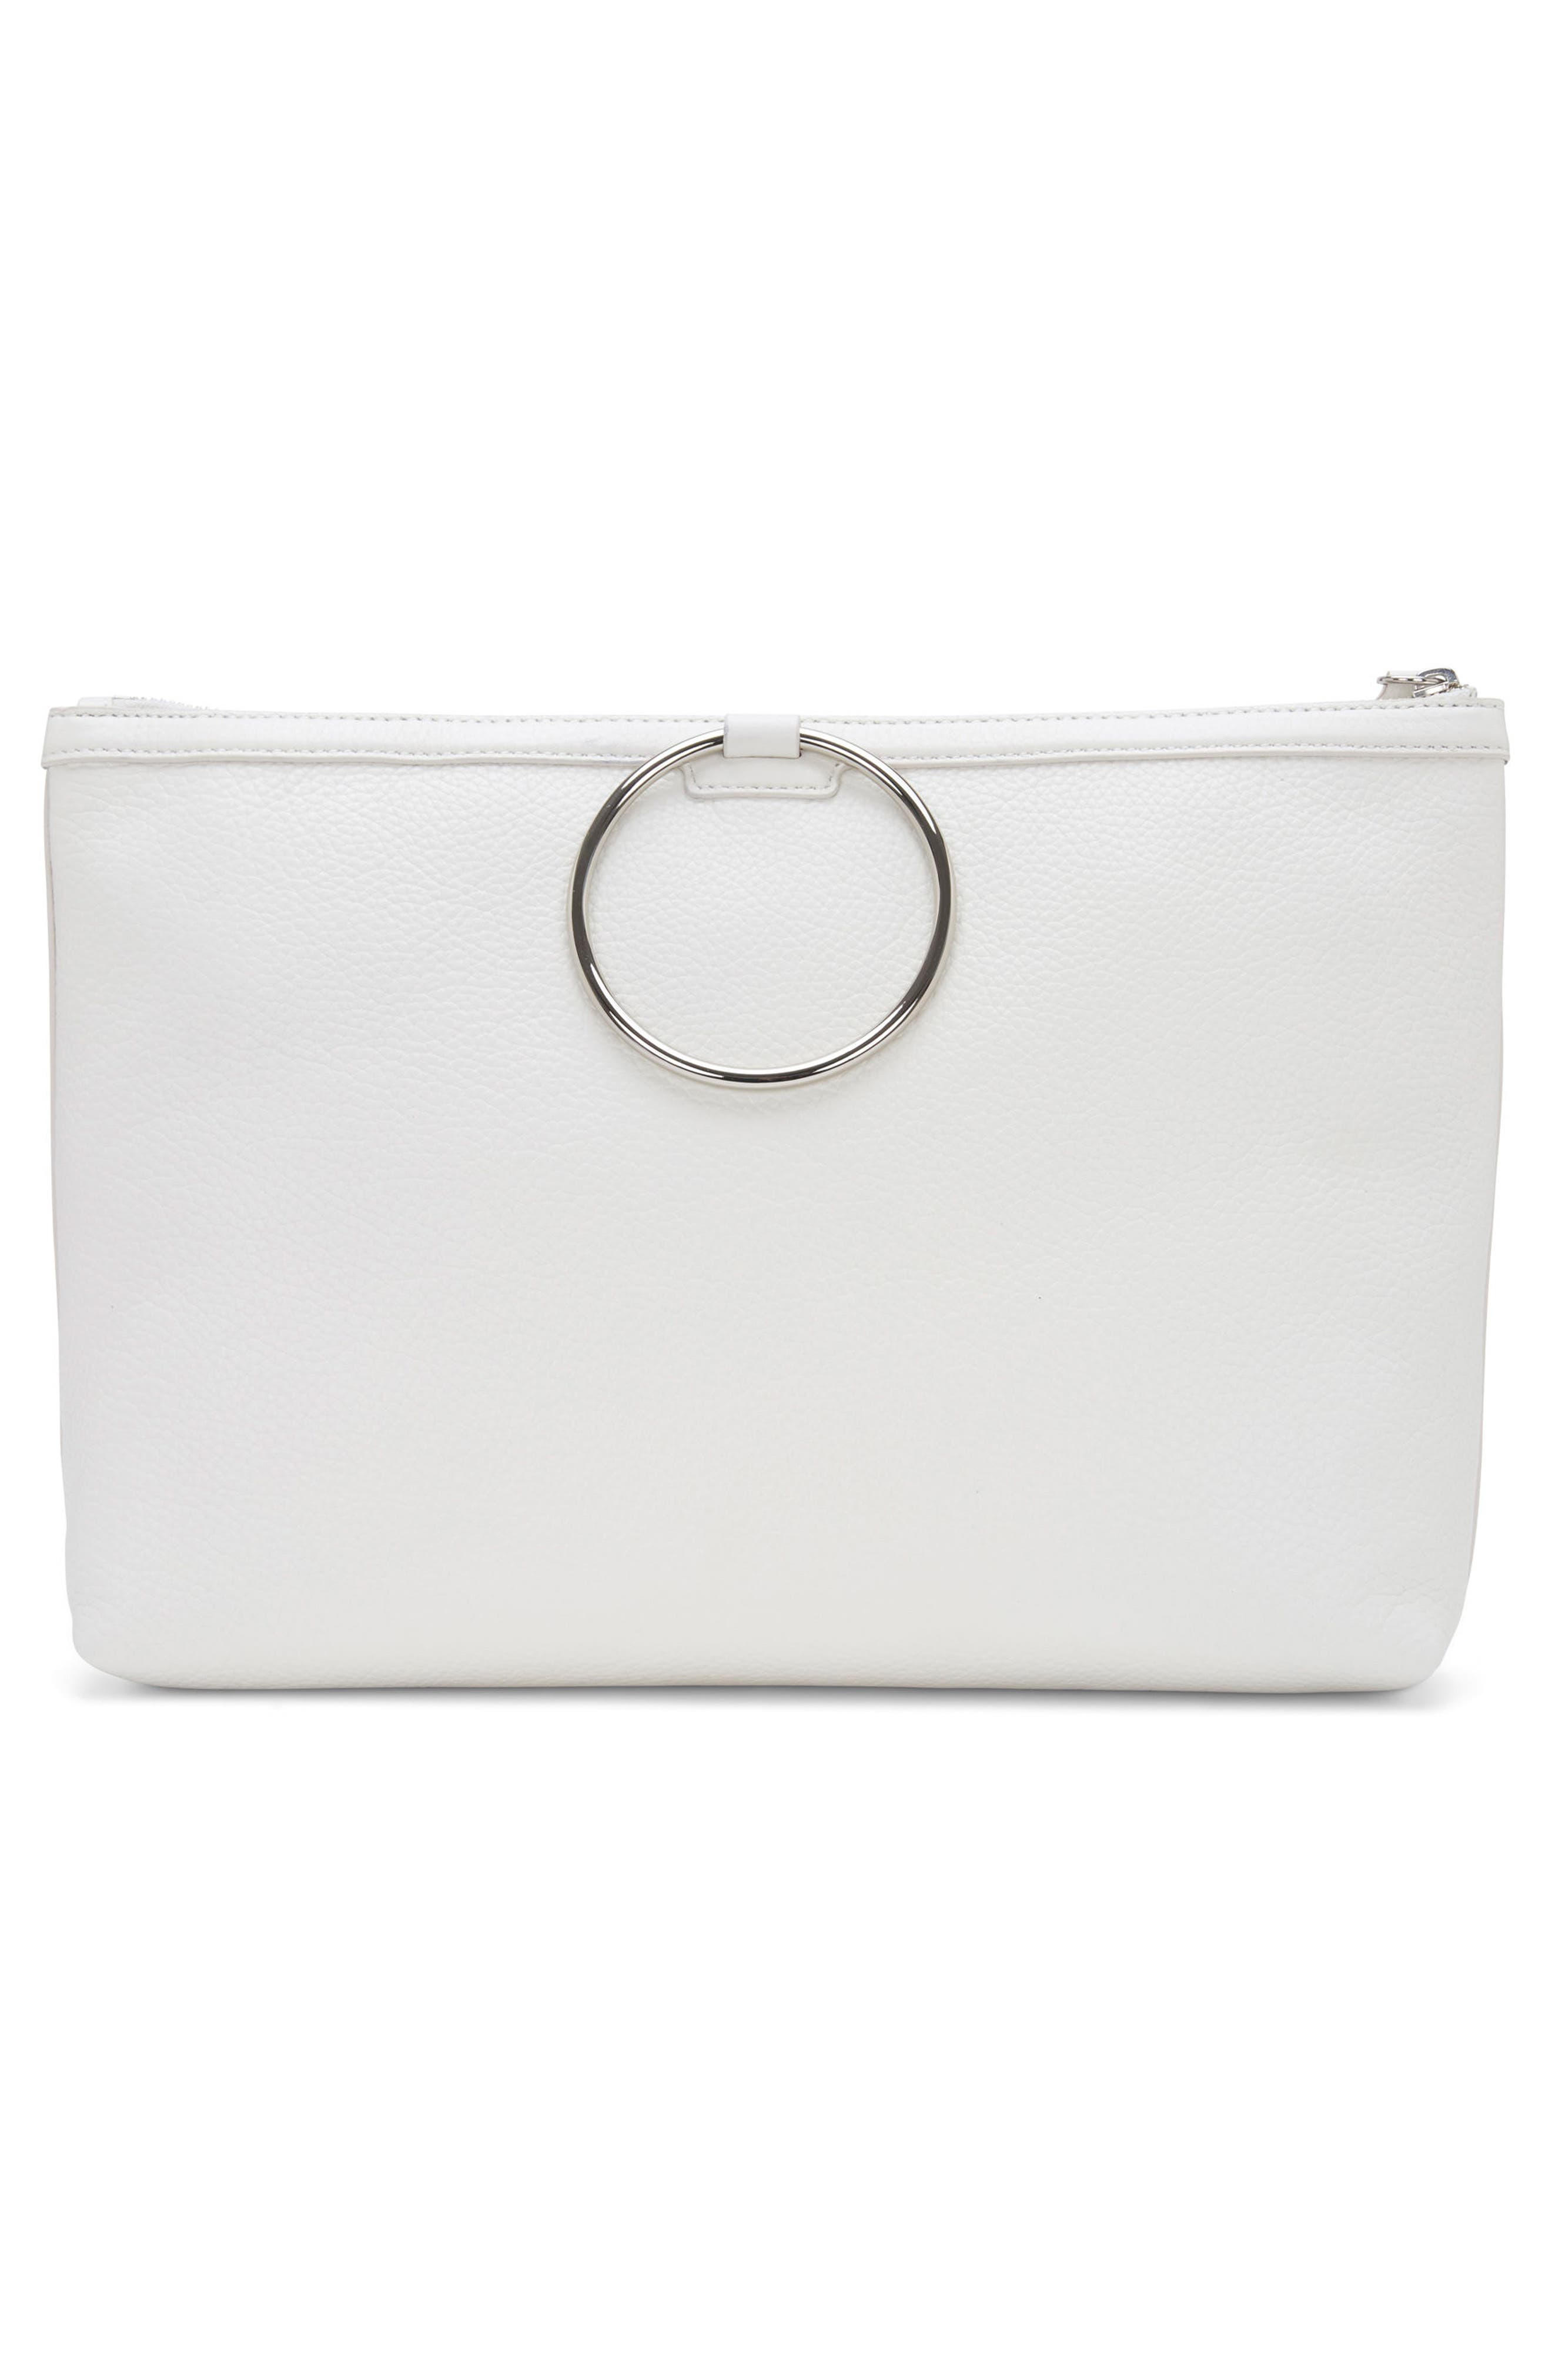 Large Pebbled Leather Ring Clutch,                             Alternate thumbnail 8, color,                             900